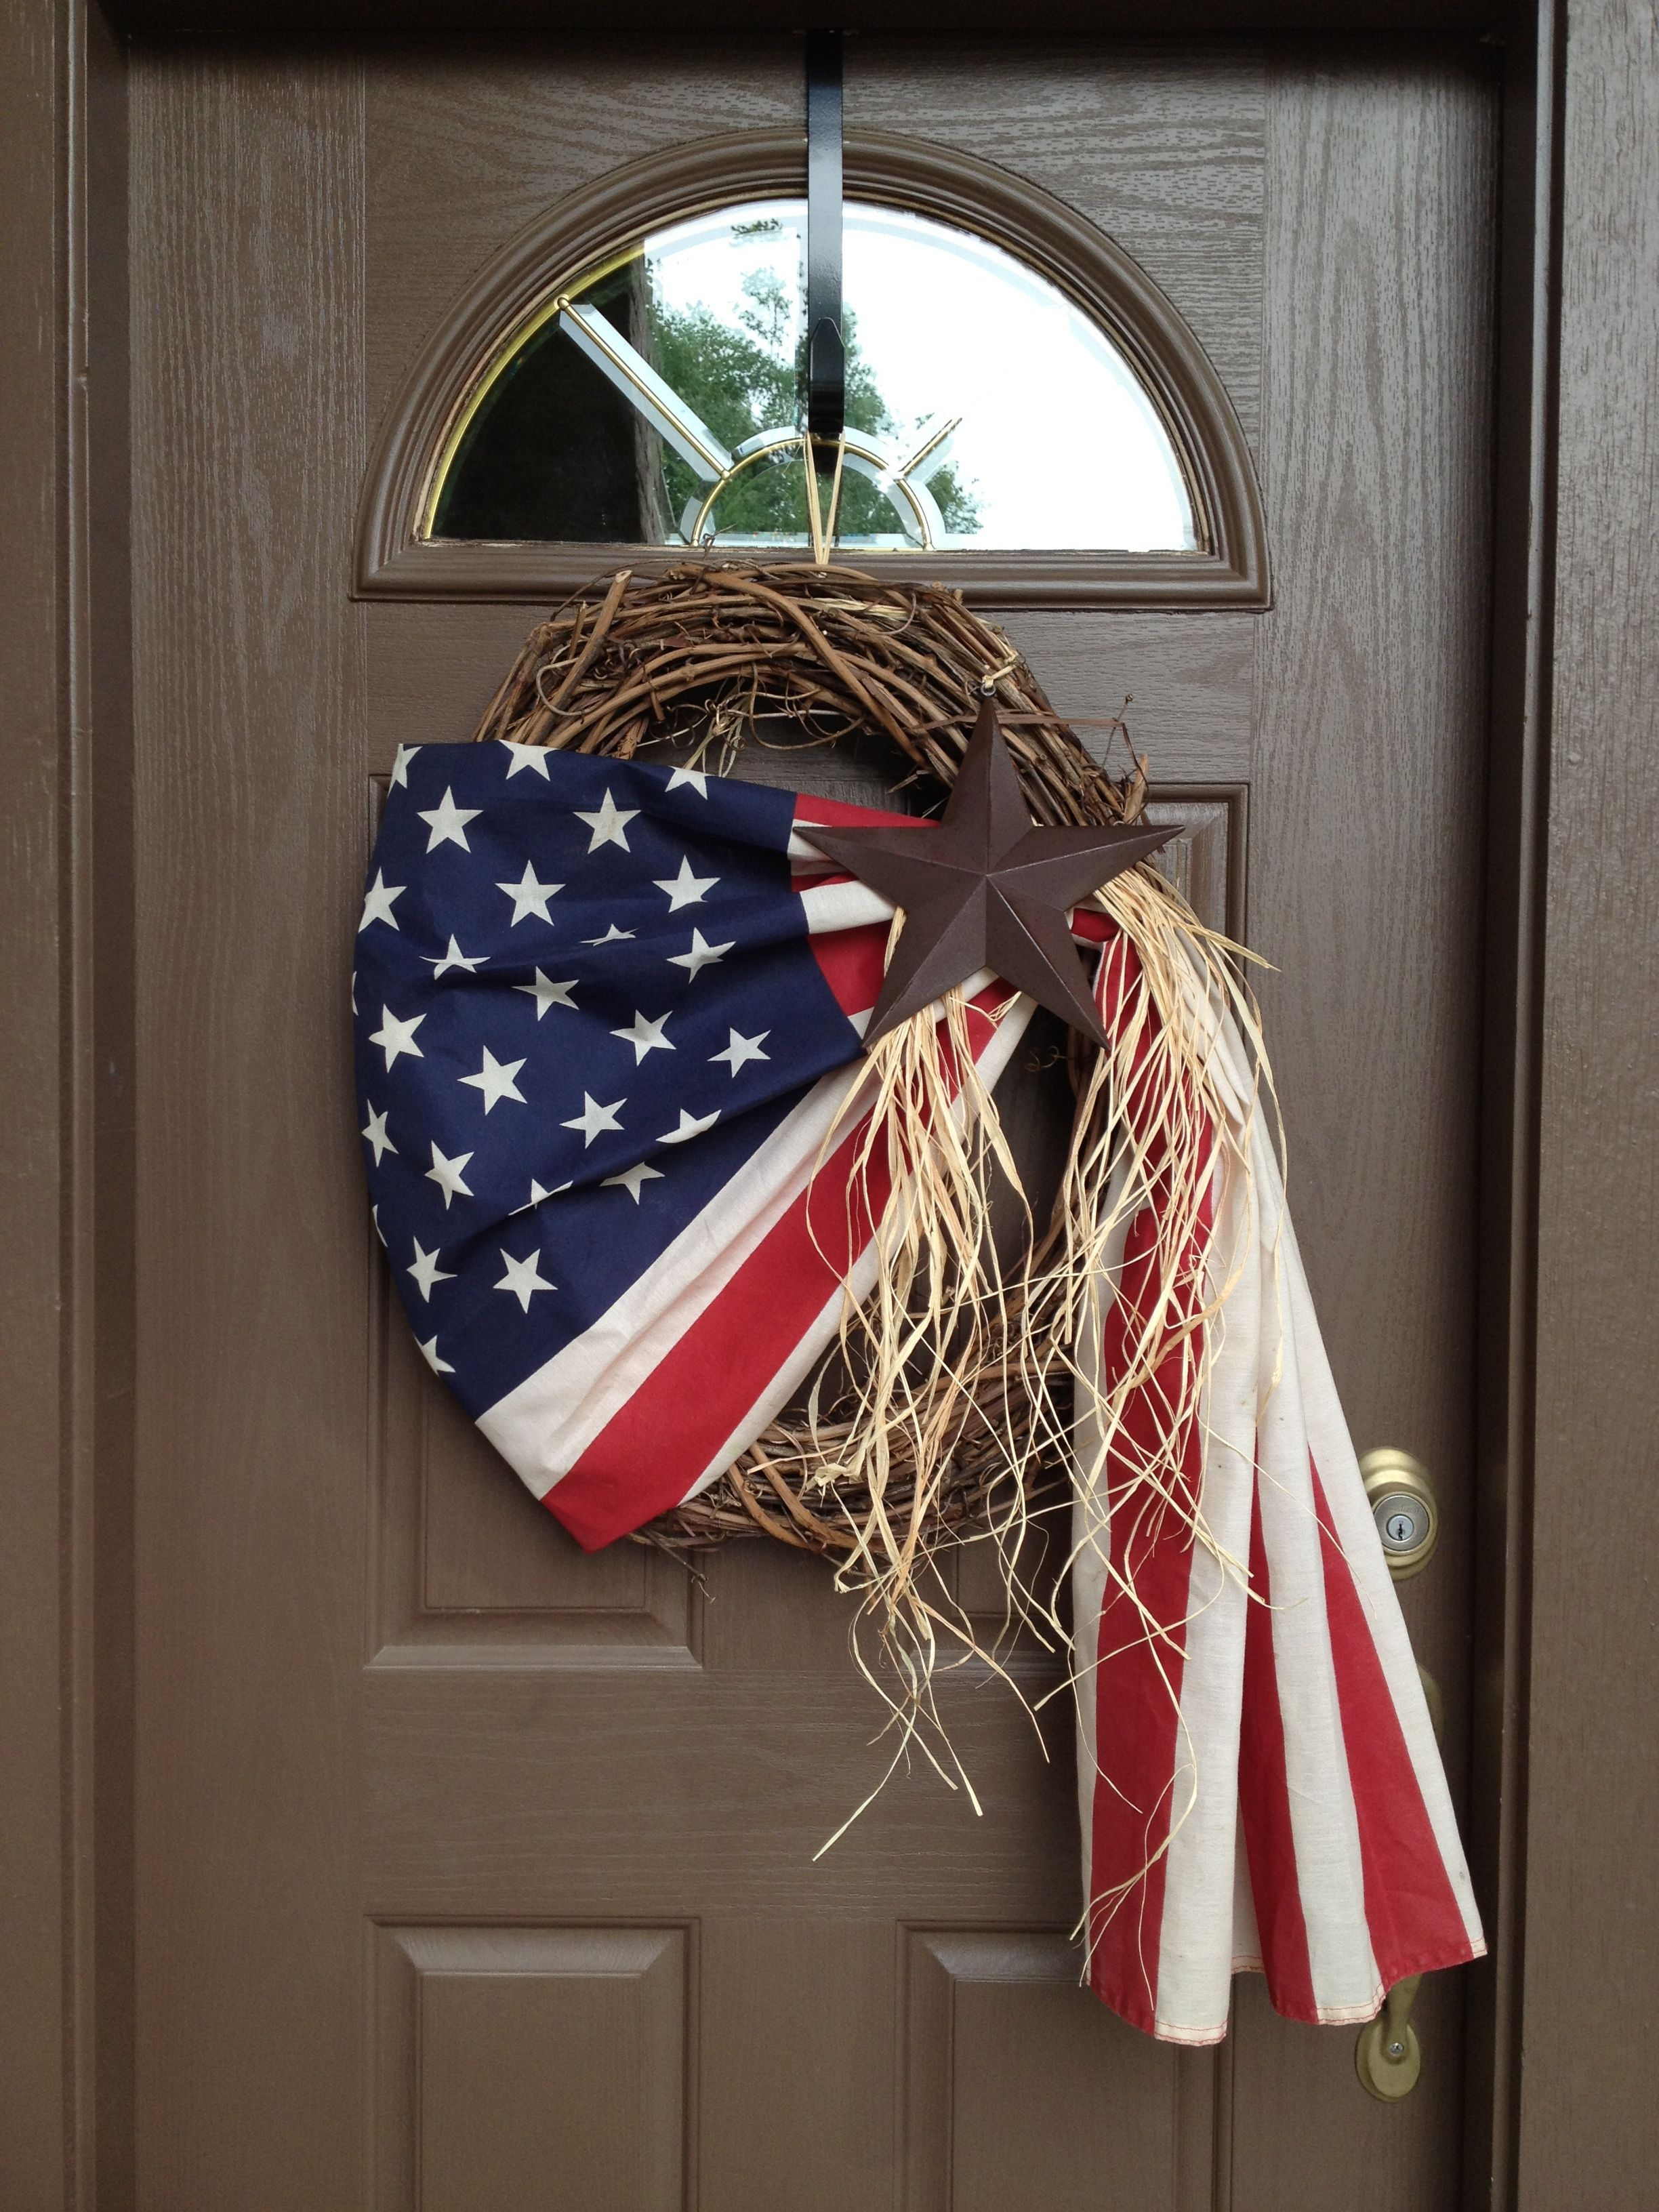 Grape vine for crafts - An Old American Flag Grapevine Wreath Raffeta And A Star Memorial Day